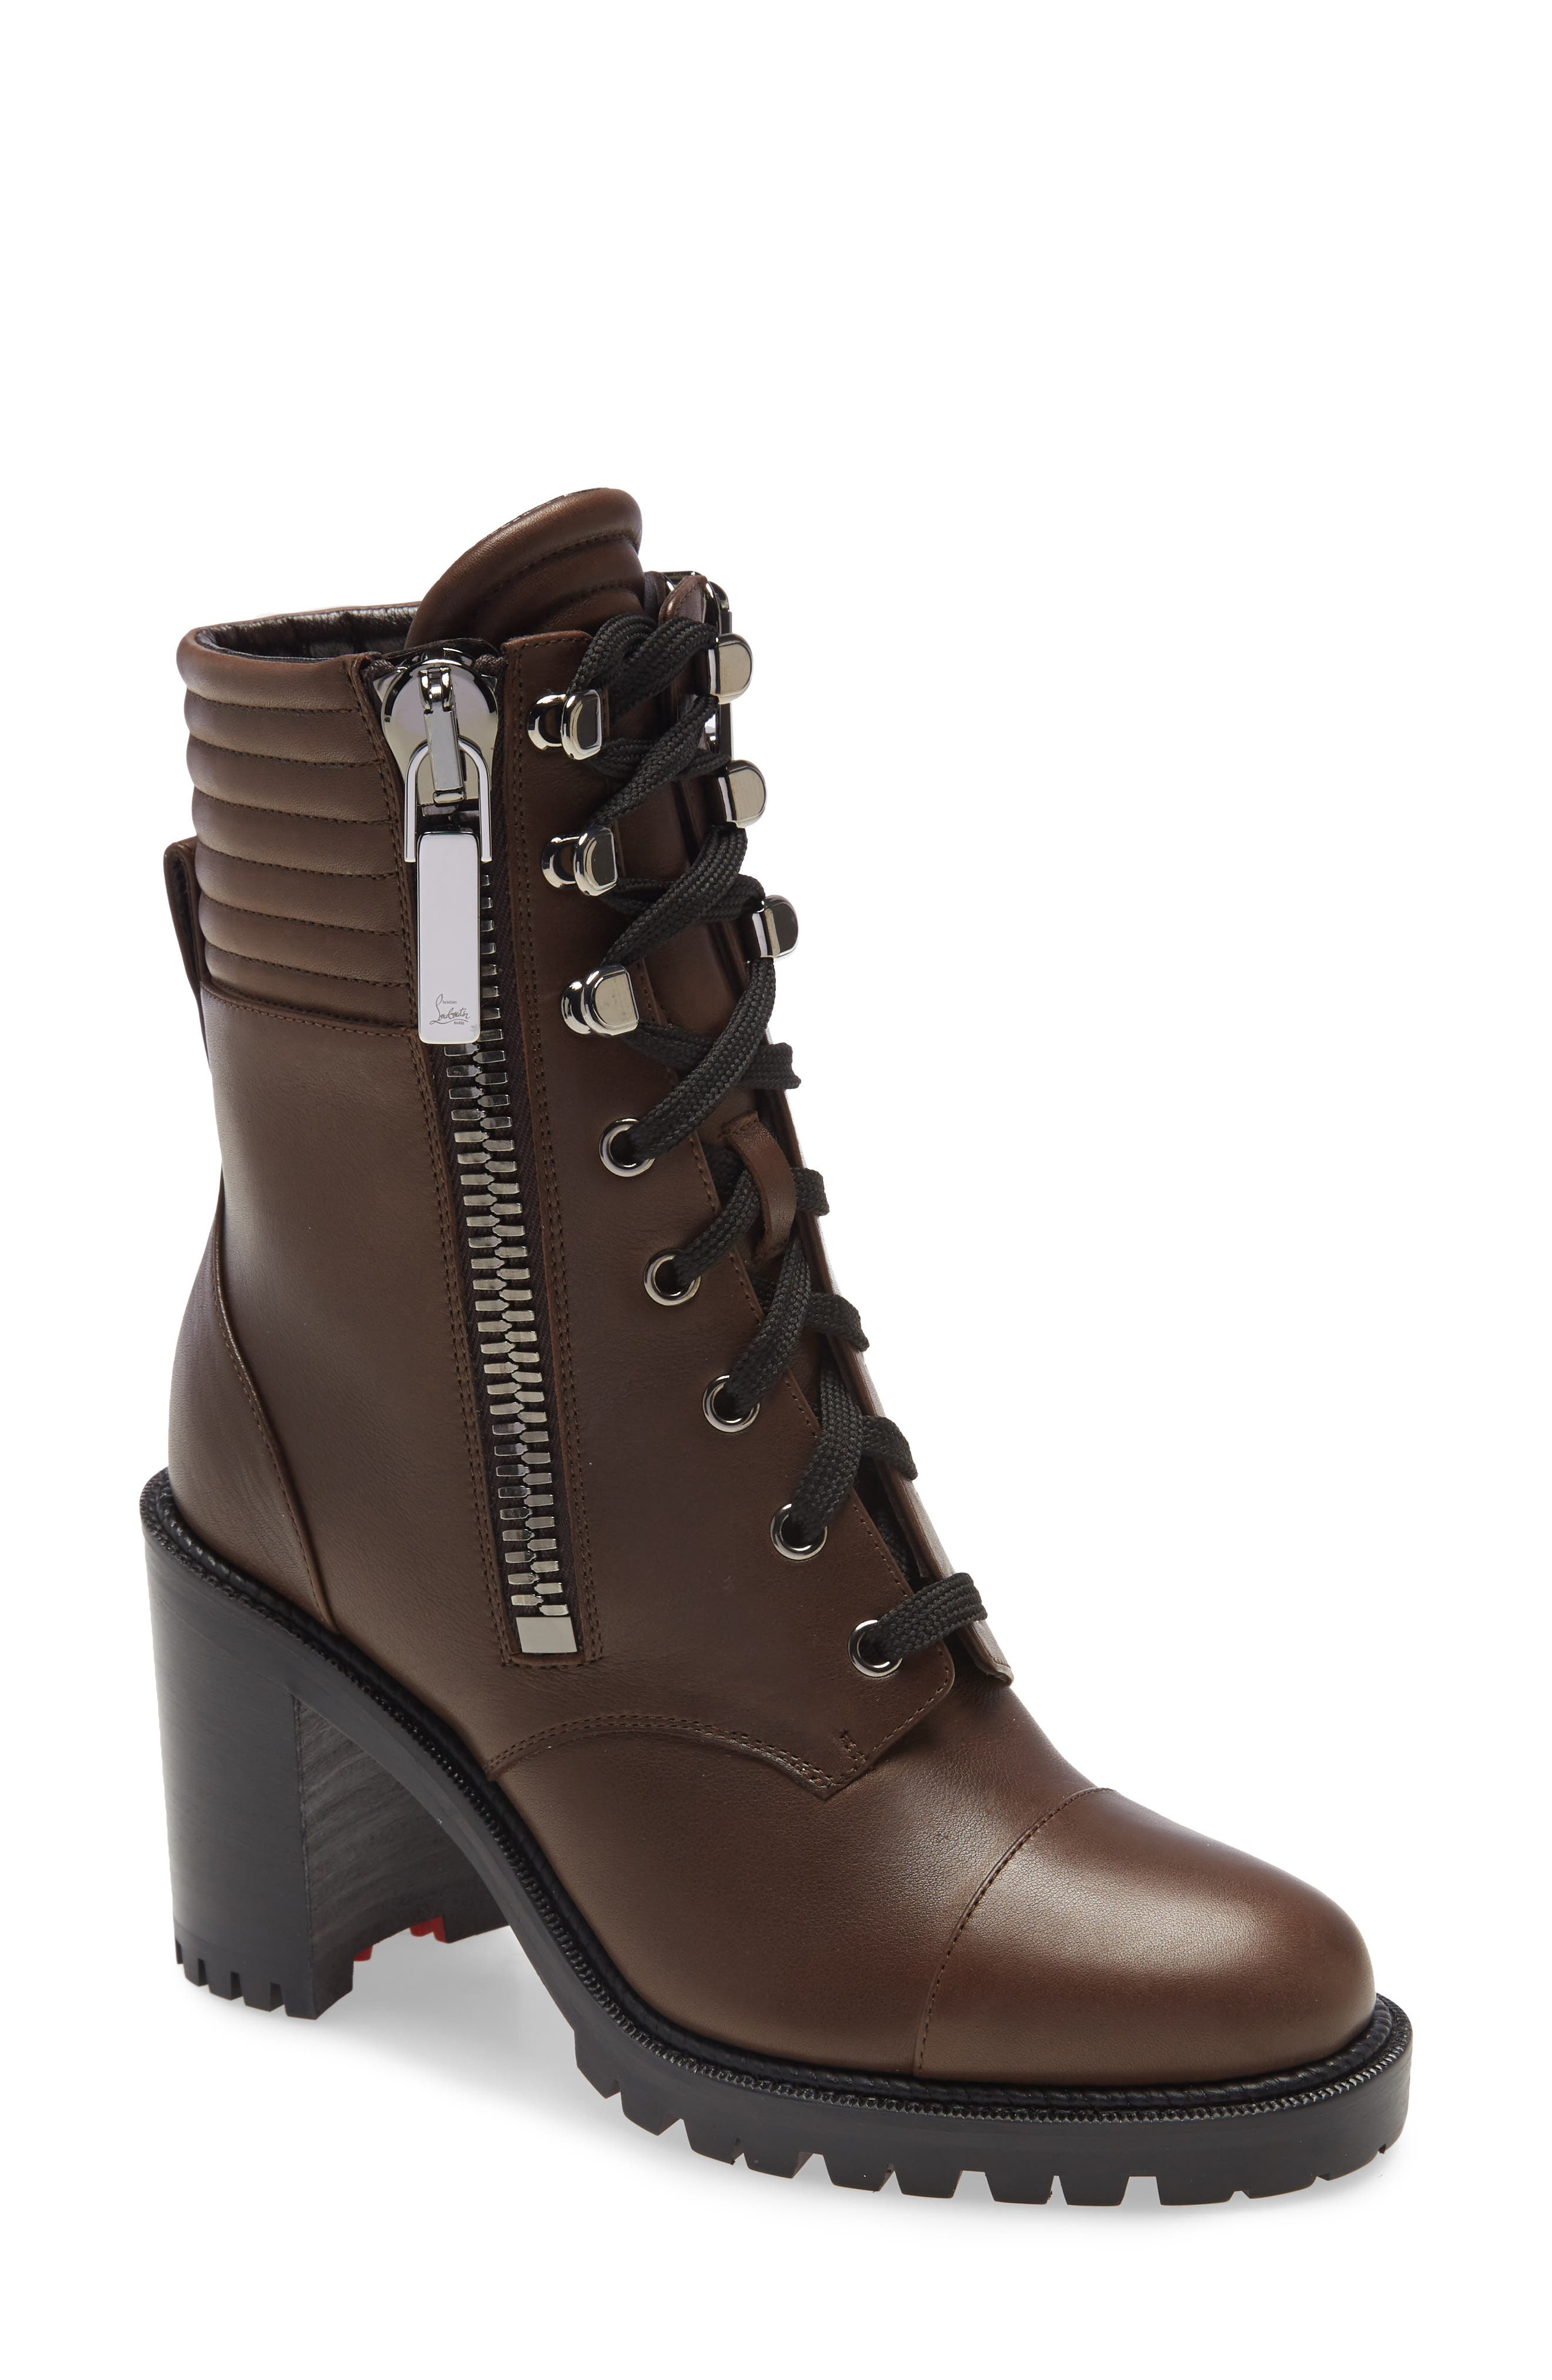 Designed with lacing hooks, a quilted cuff and reinforced cap toe, this heeled leather hiking boot may be trail inspired, but it\\\'s city bound. Christian Louboutin\\\'s iconic red sole gets a rugged reboot as an inset in the lugged tread. Style Name: Christian Louboutin En Hiver Hiking Boot (Women). Style Number: 6046864. Available in stores.